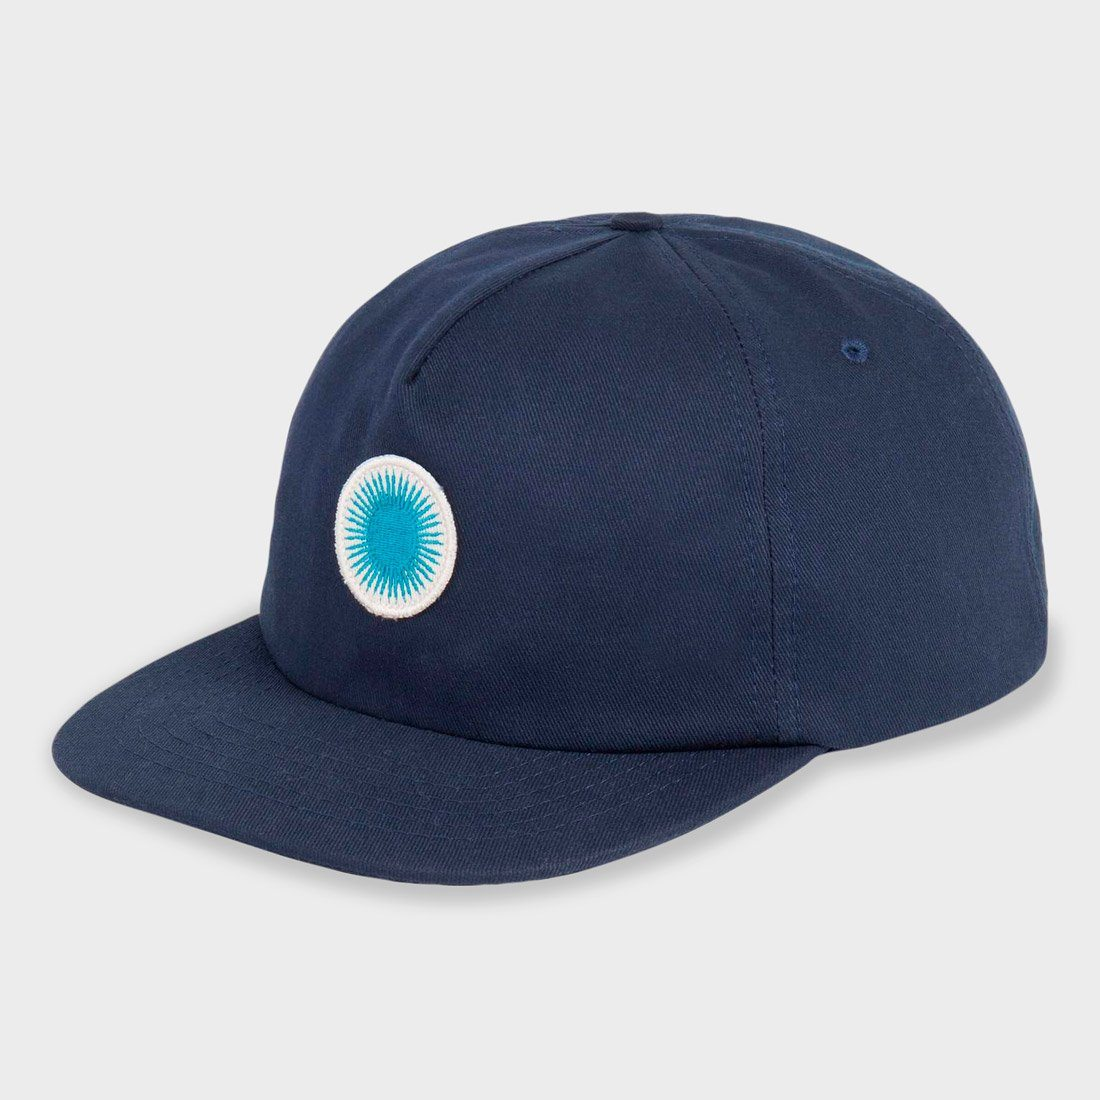 Mollusk 13 Floor Polo Hat Navy